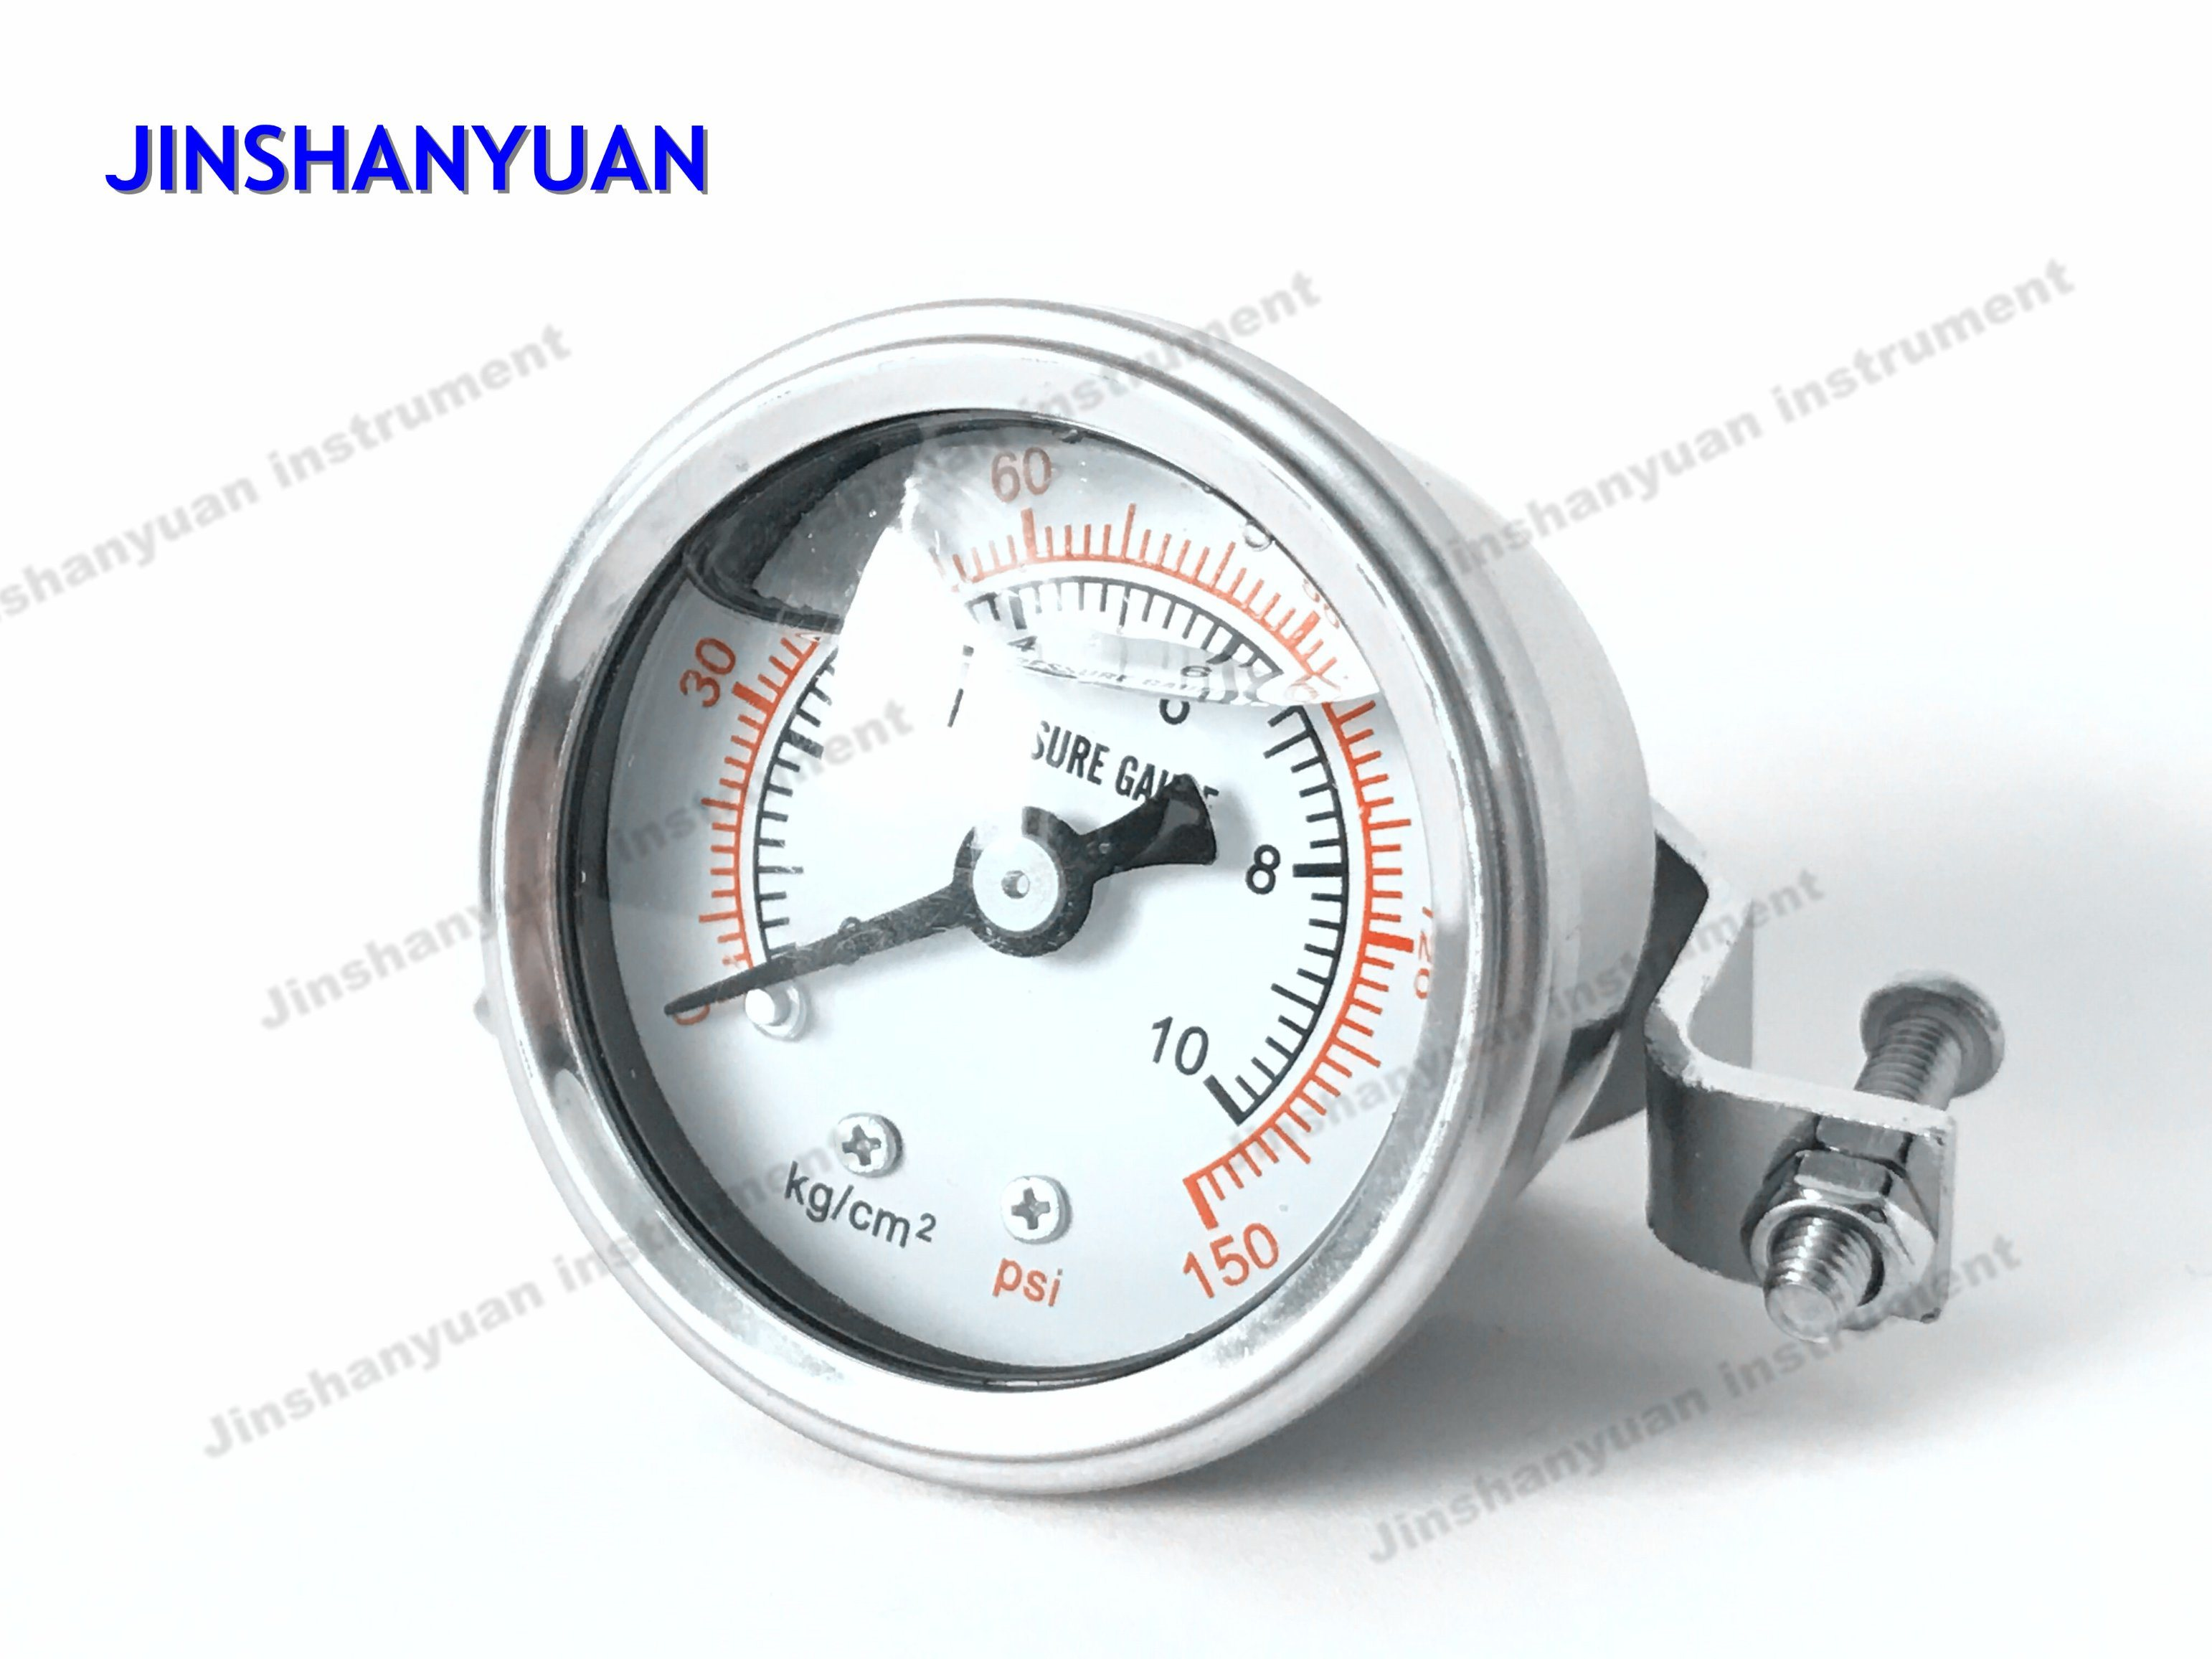 Og-003 Liquid Filled Manometer with Clamp/Pressure Gauge